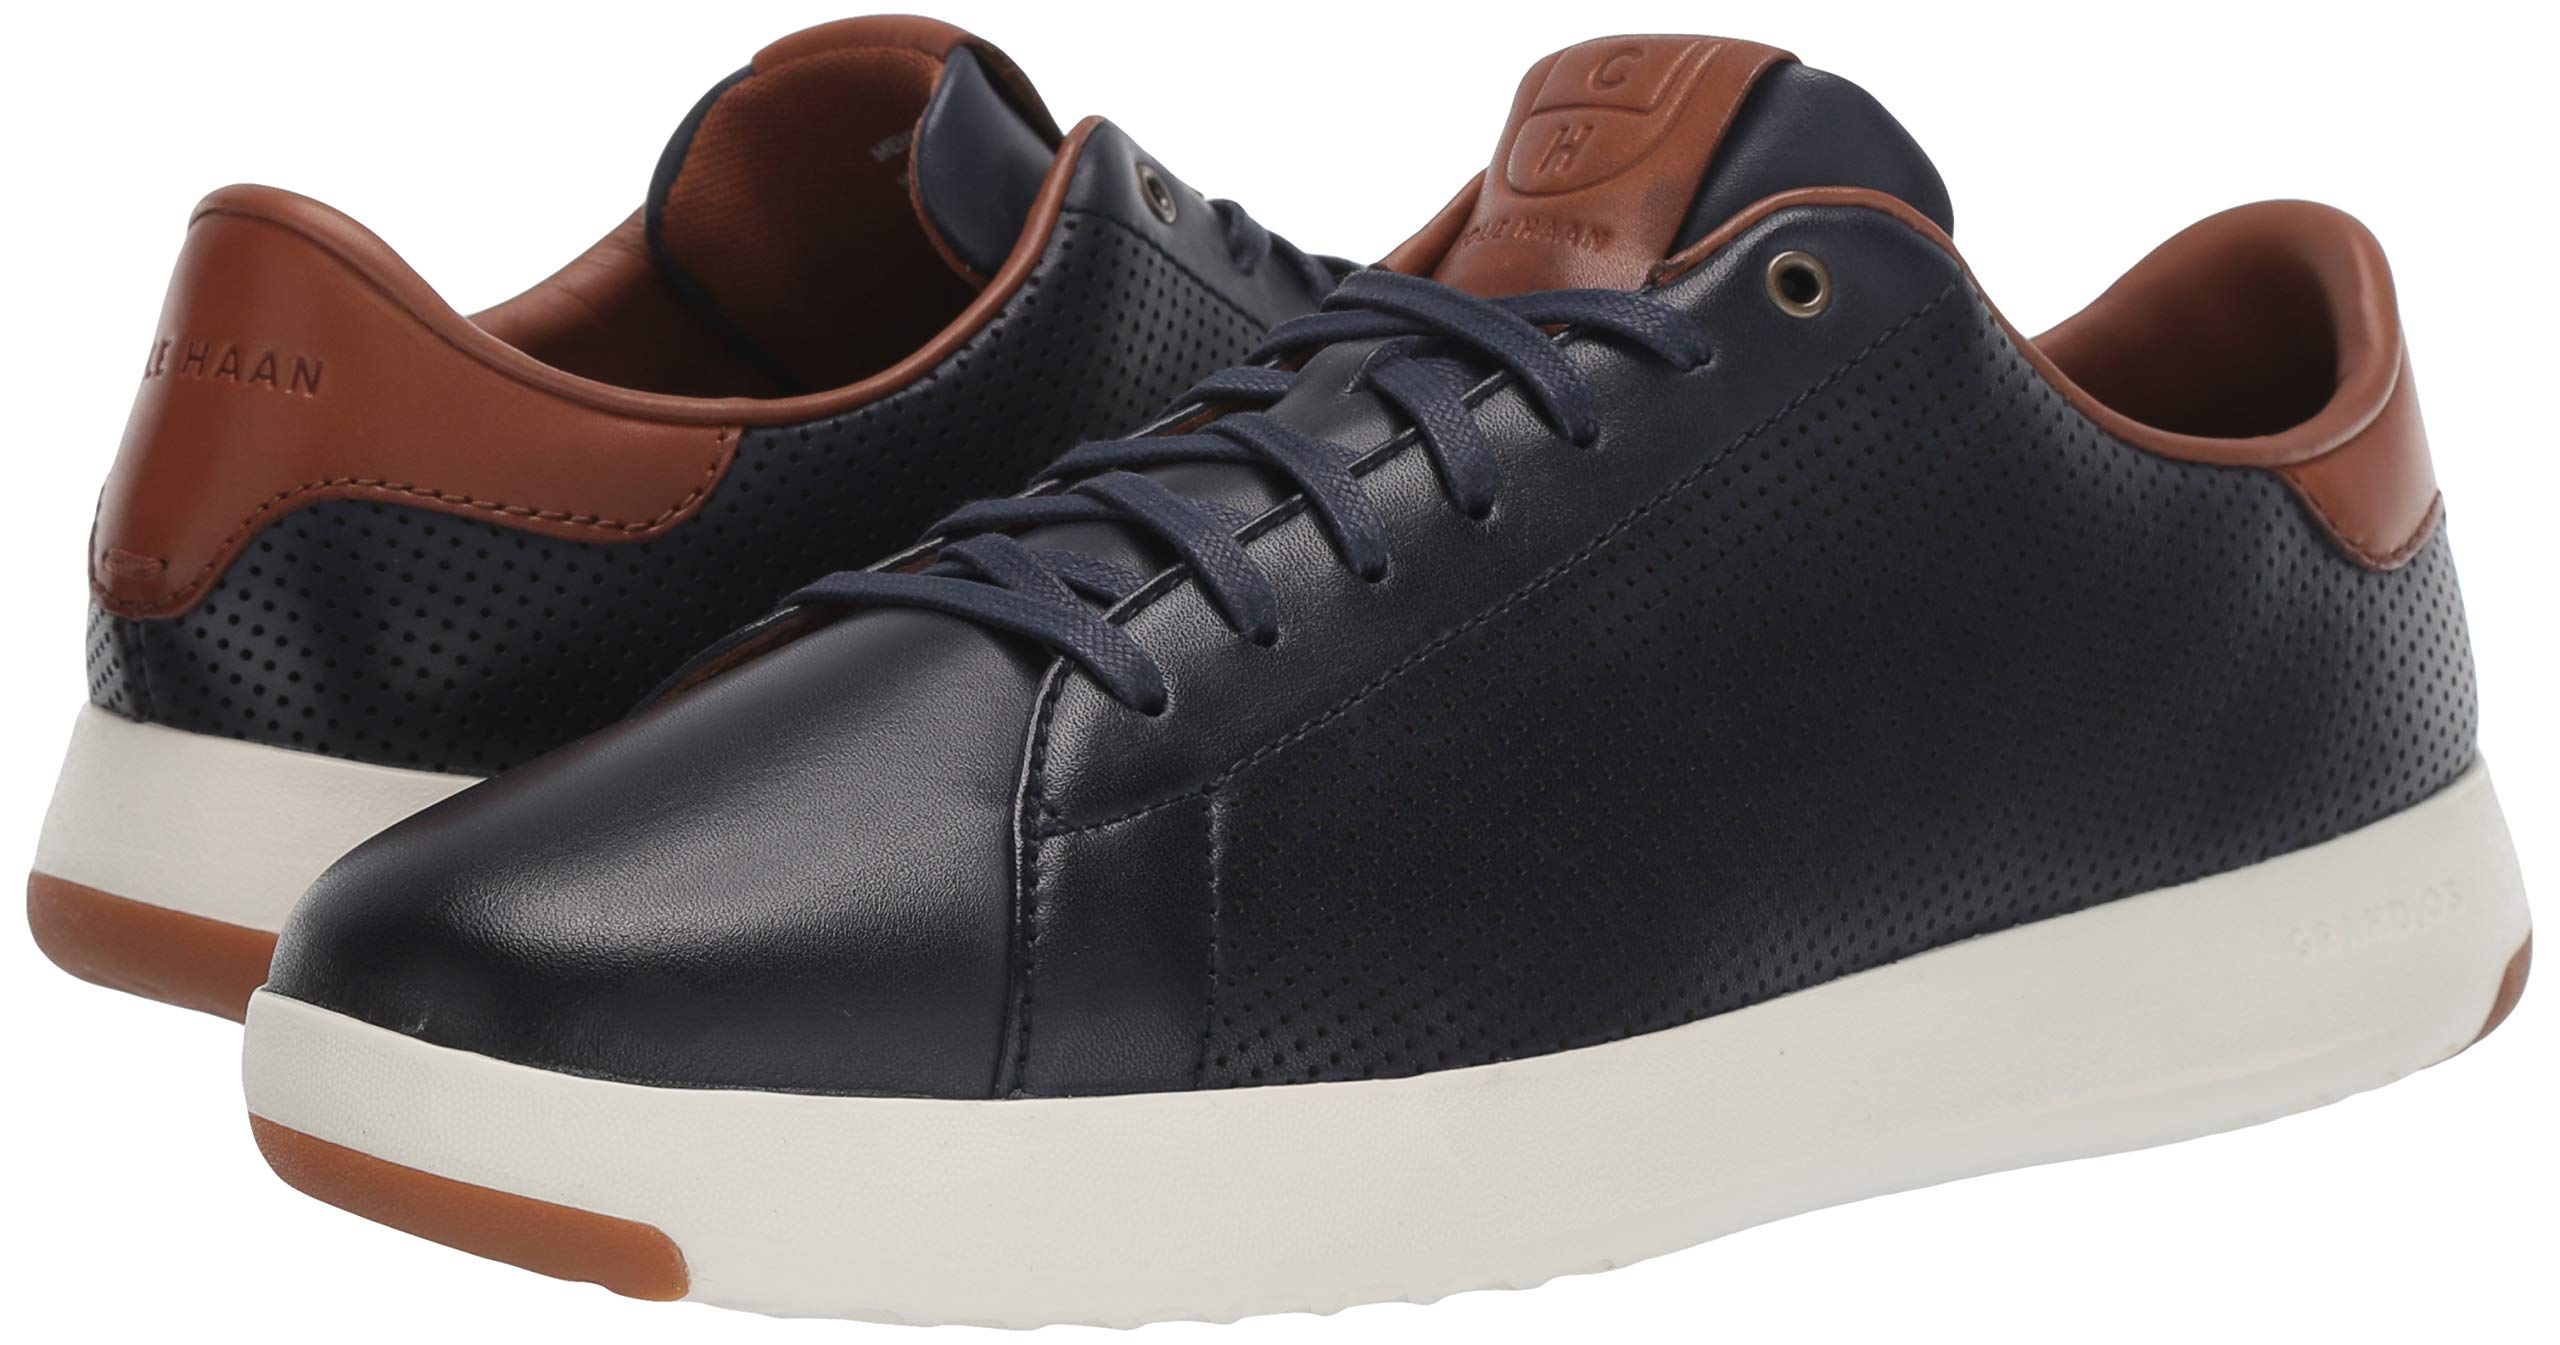 Cole Haan Mens Grandpro Tennis Sneaker 7 Navy Handstained Leather by Cole Haan (Image #6)